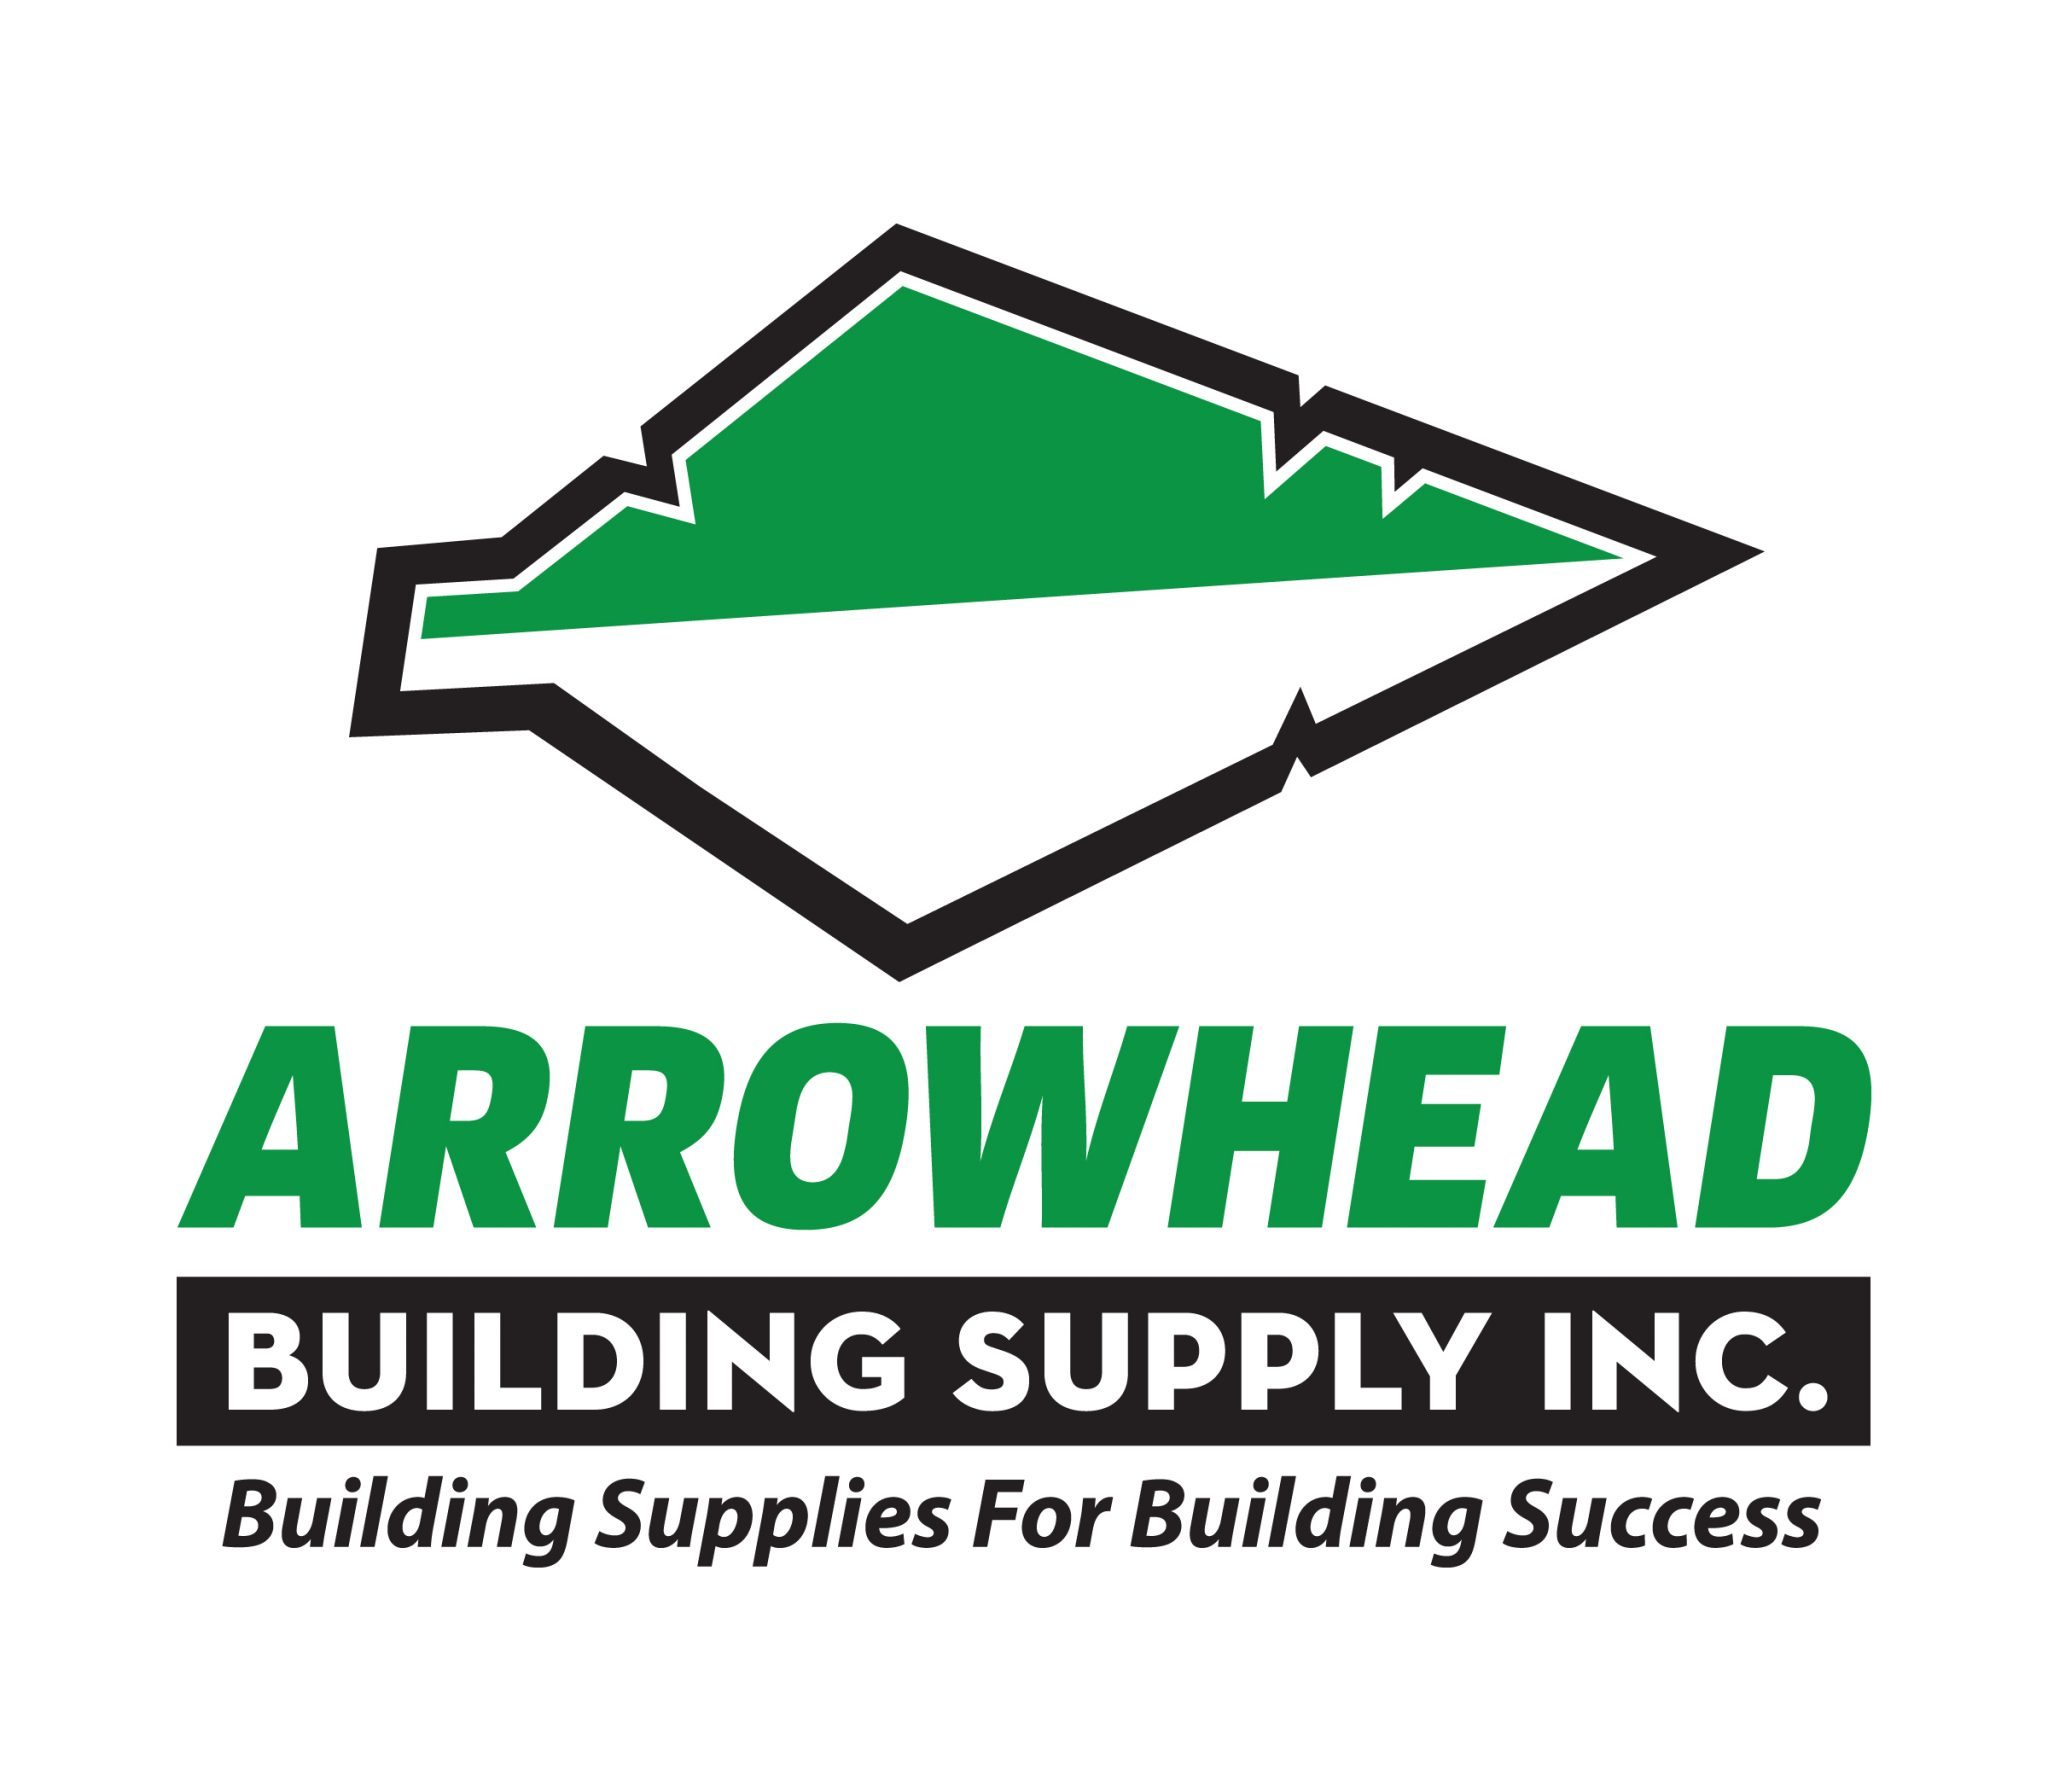 Arrowhead Building Supply